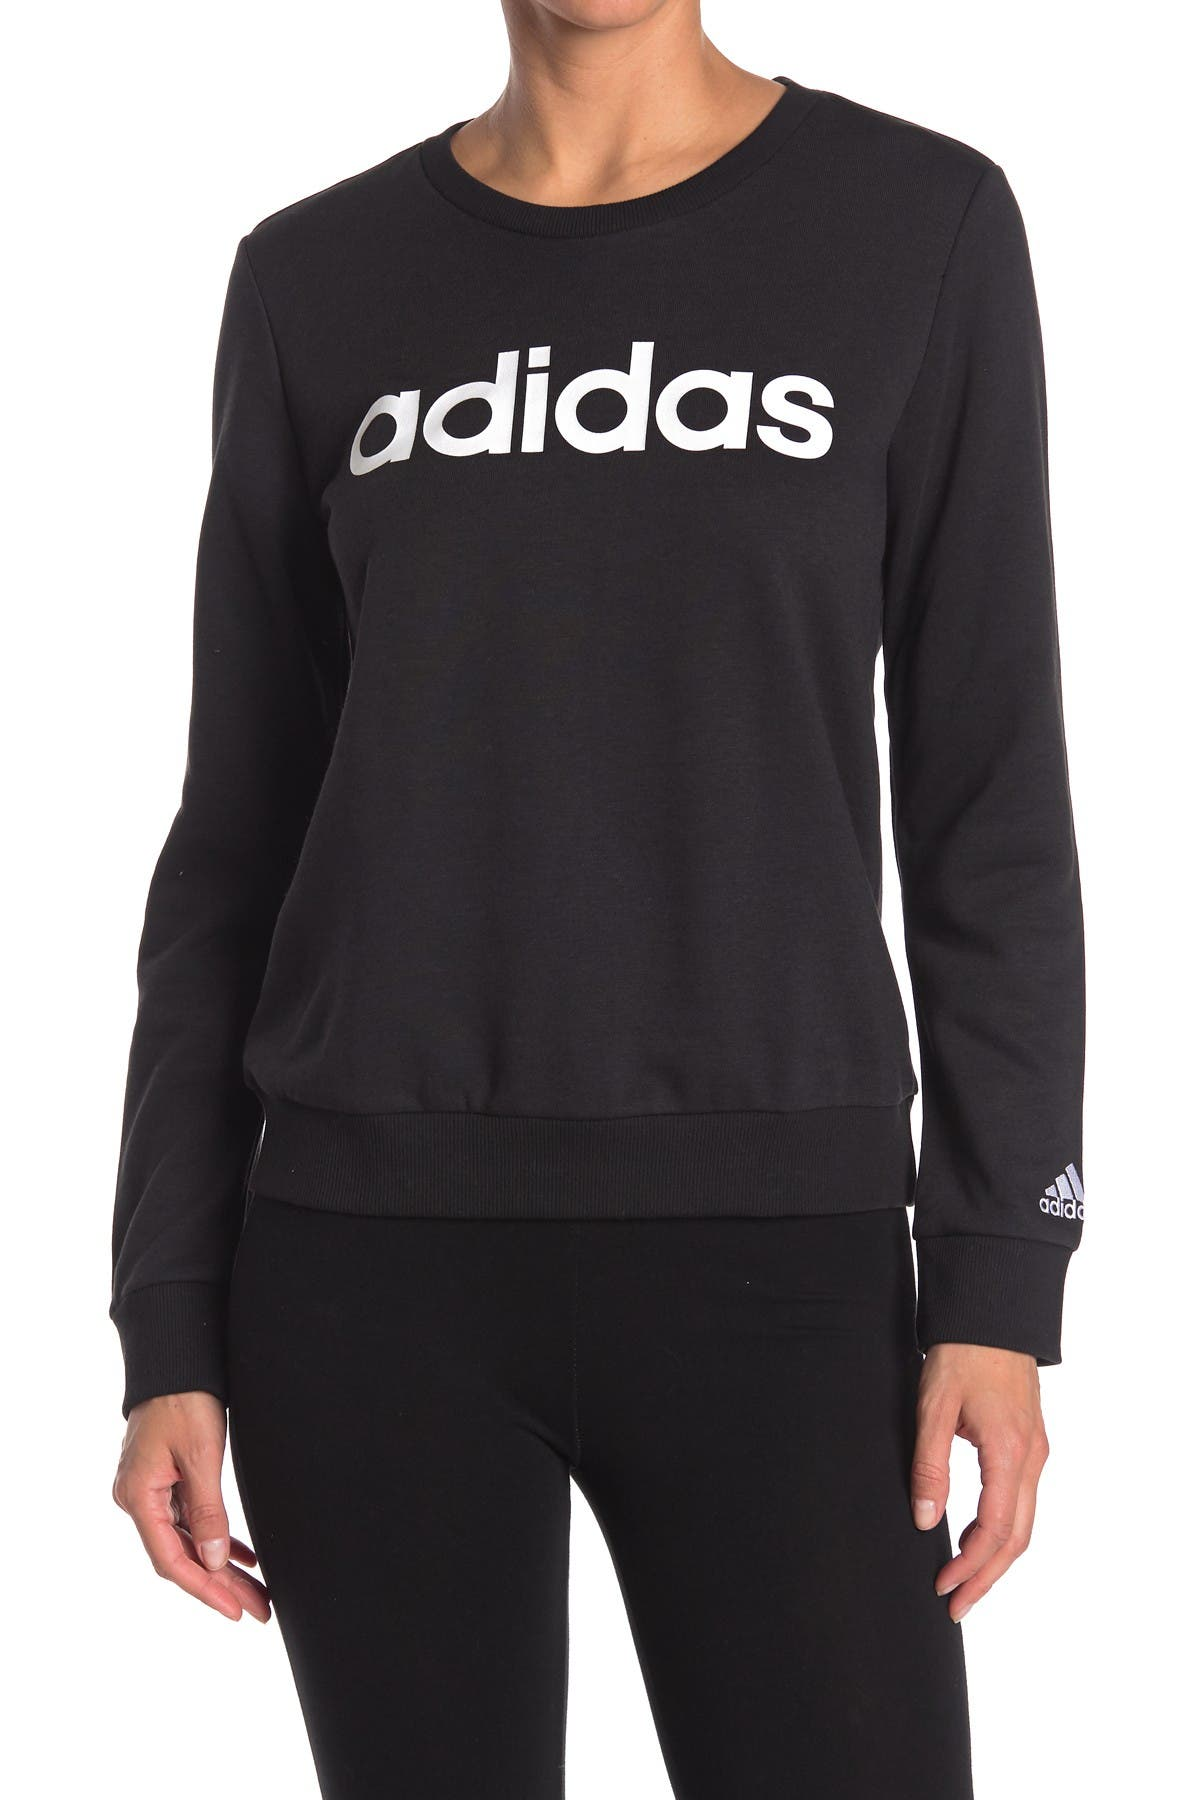 Image of adidas Logo Pullover Sweater